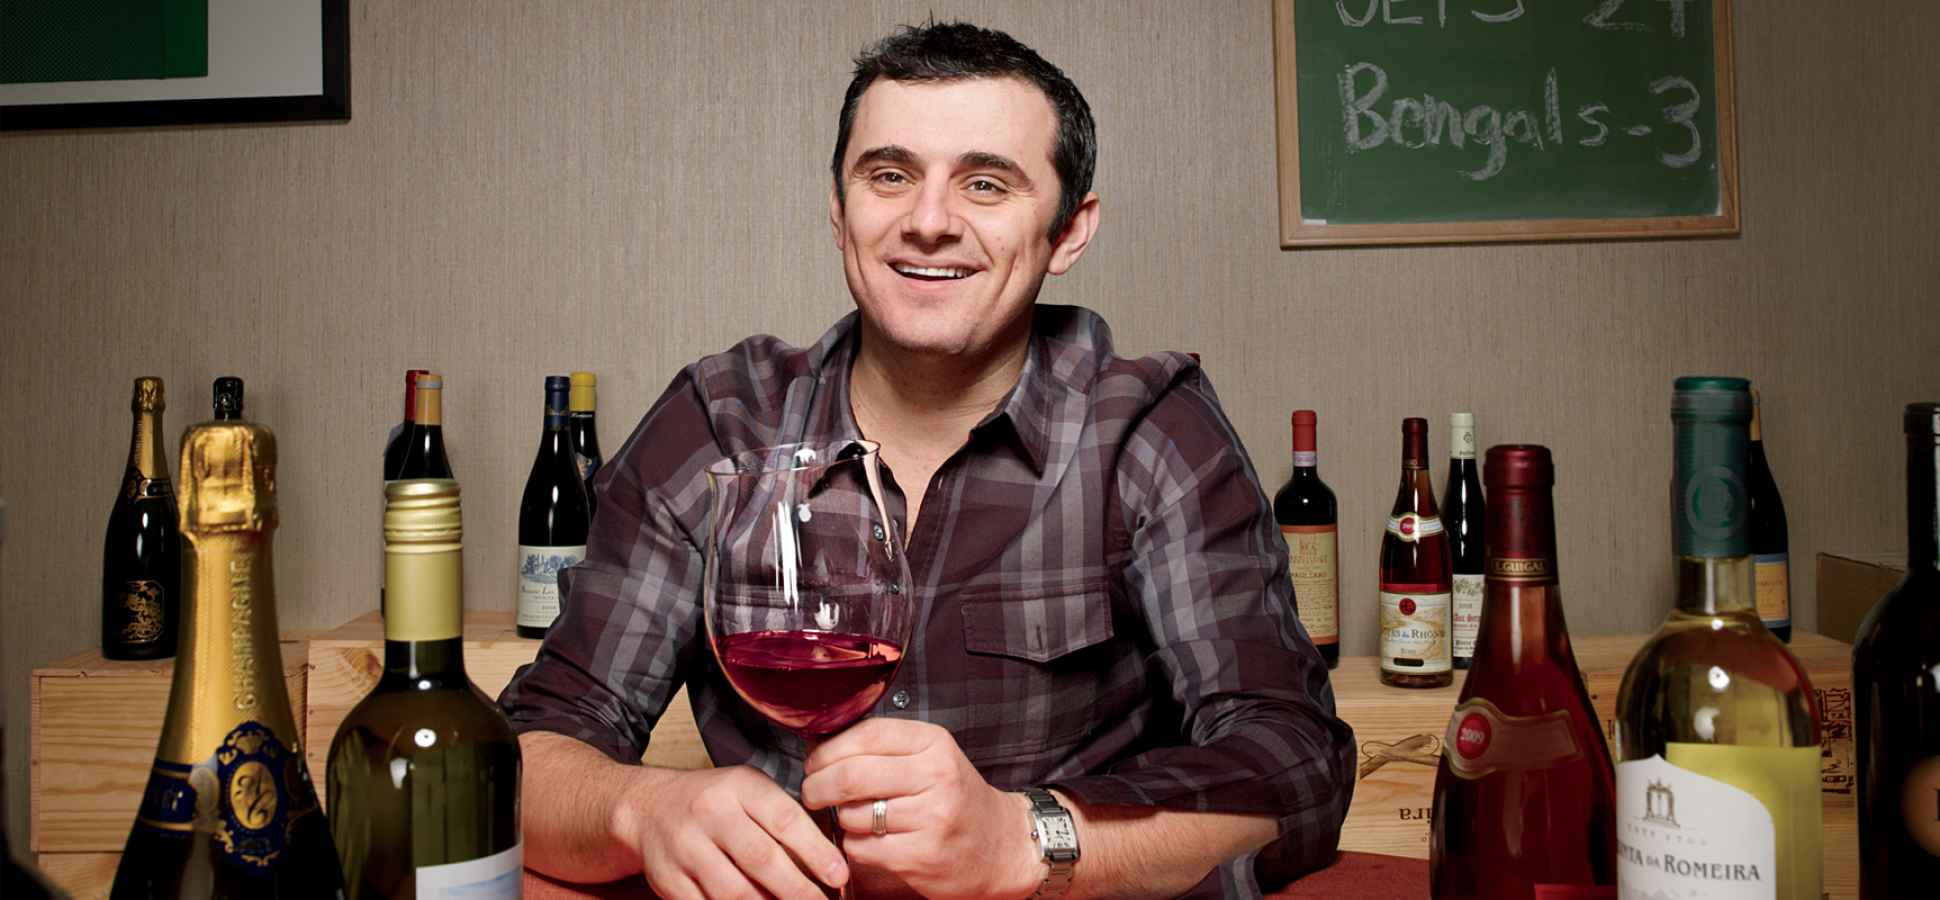 Gary Vaynerchuk: How to Tell Your Story on Social Media